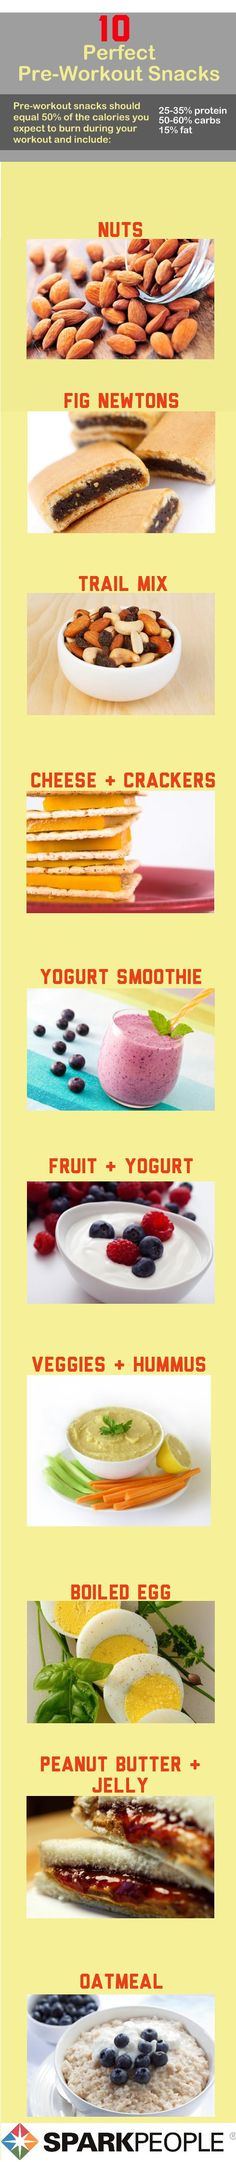 Perfect Pre-Workout Snacks! Click through for details on how much to eat, when to plan your meals and more!   via @SparkPeople